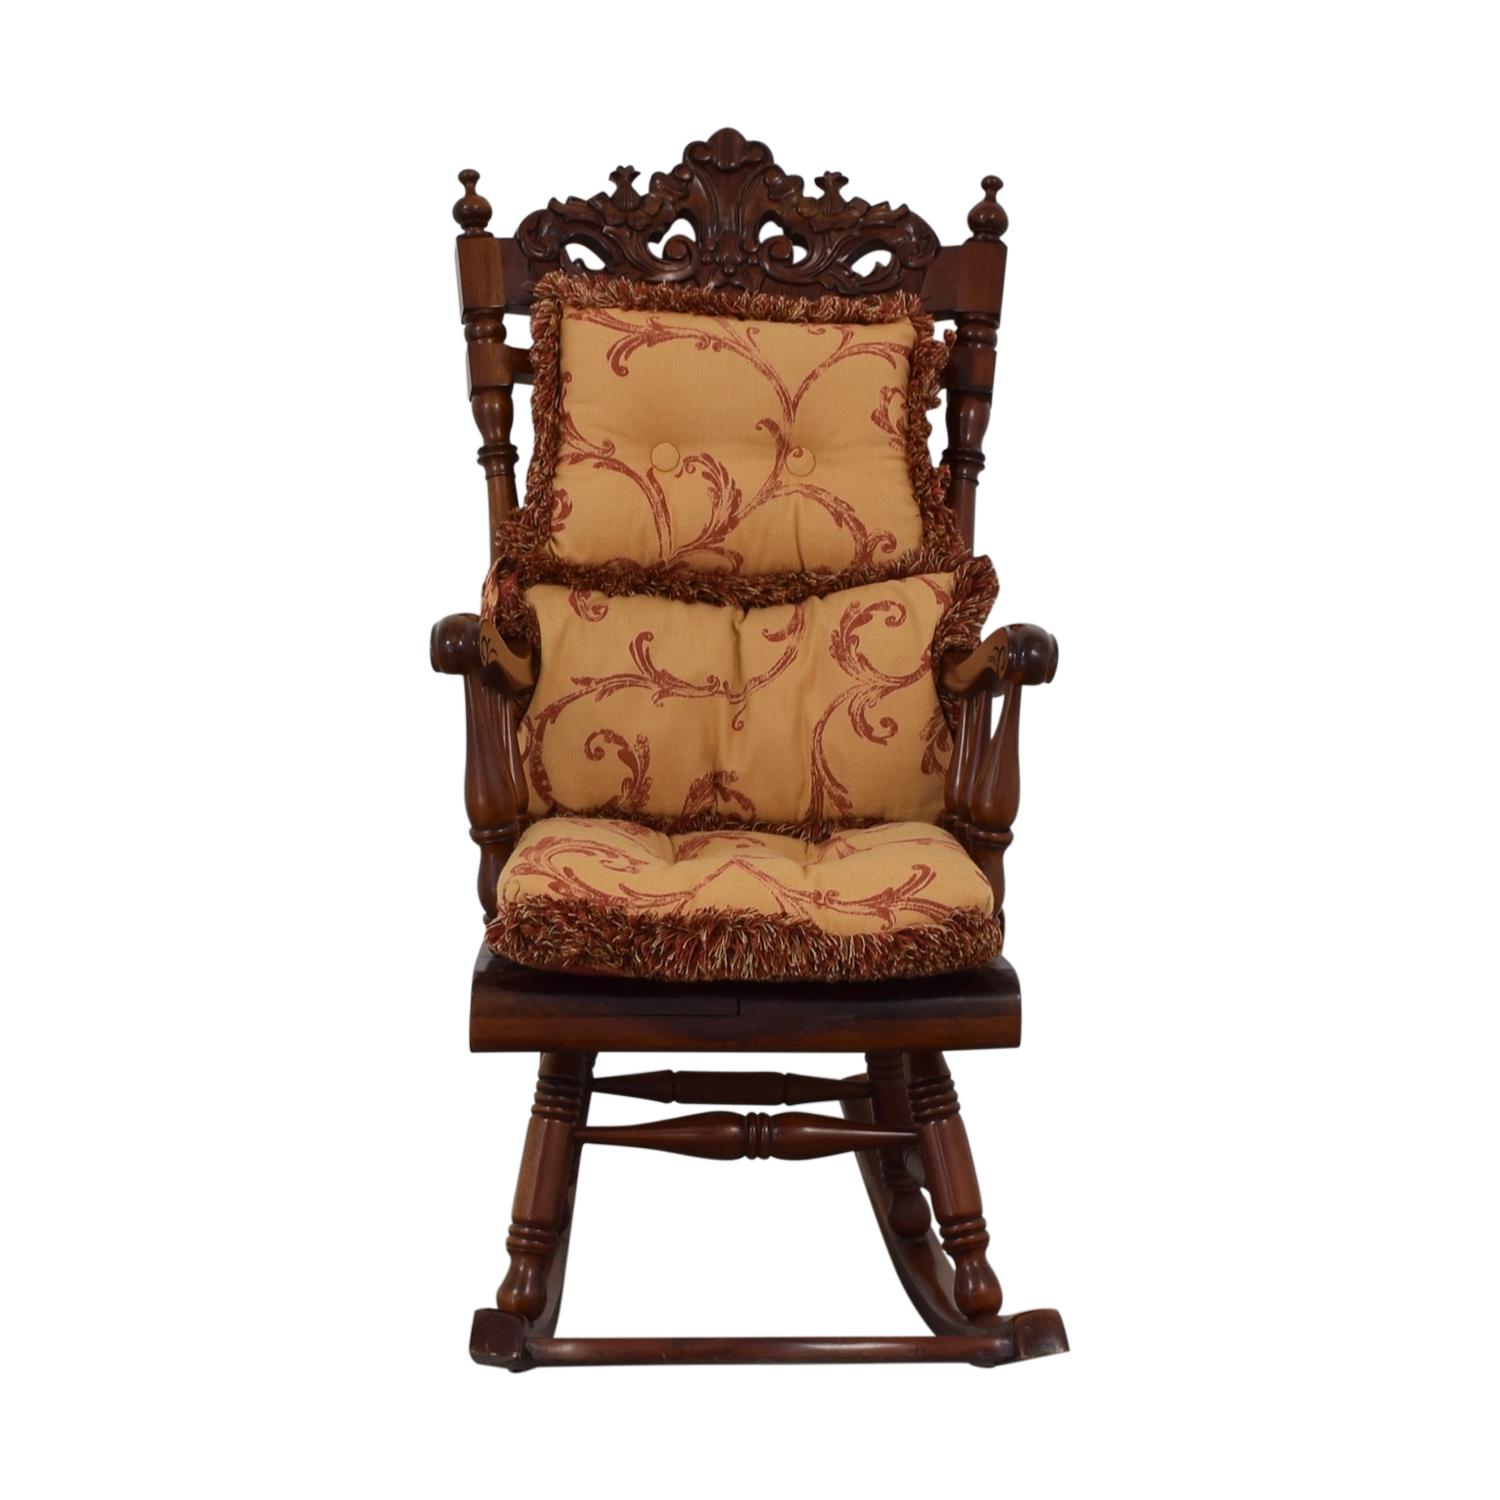 Rocking Accent Chairs 84 Off Carved Wood Rocking Chair With Cushions Chairs